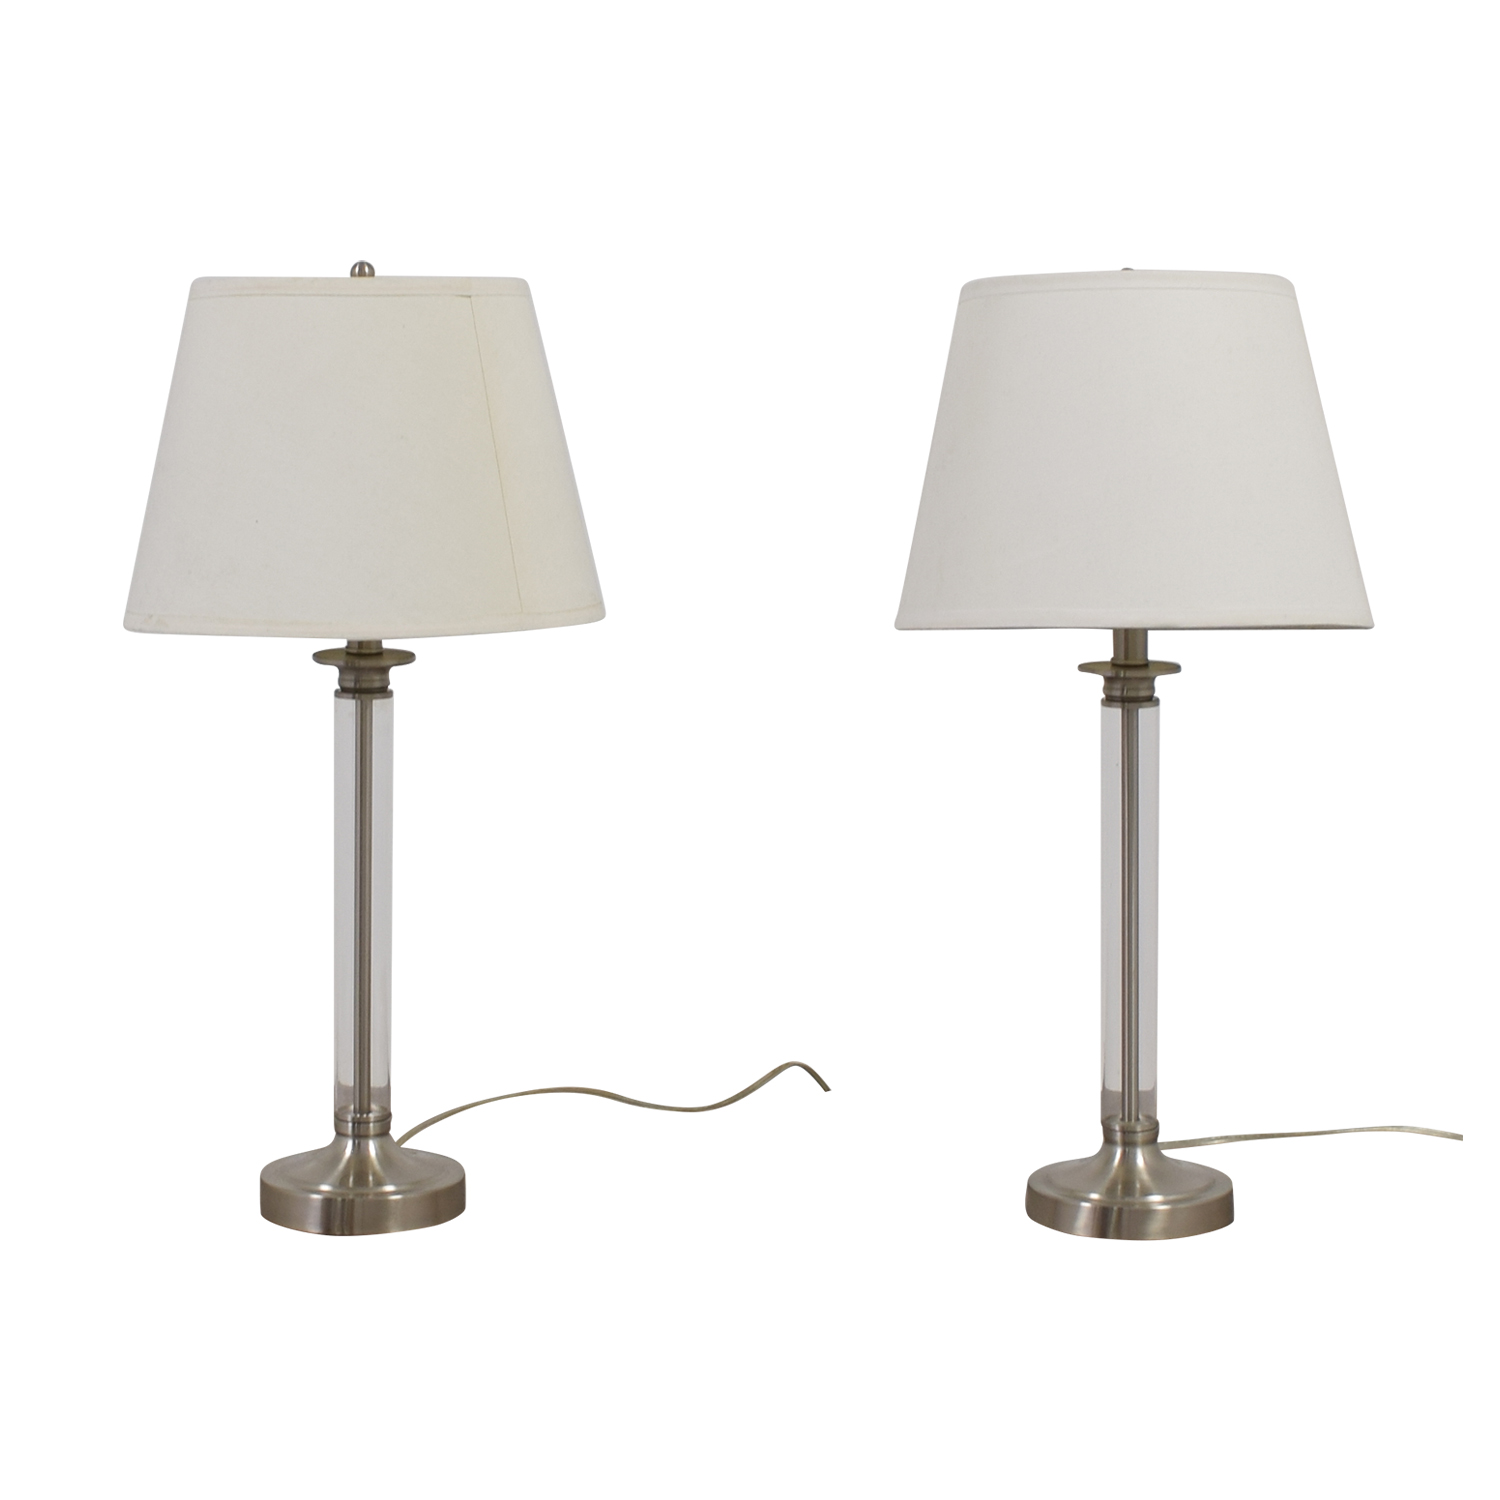 62% OFF - Bed Bath & Beyond Bed Bath & Beyond End Table Lamps / Decor